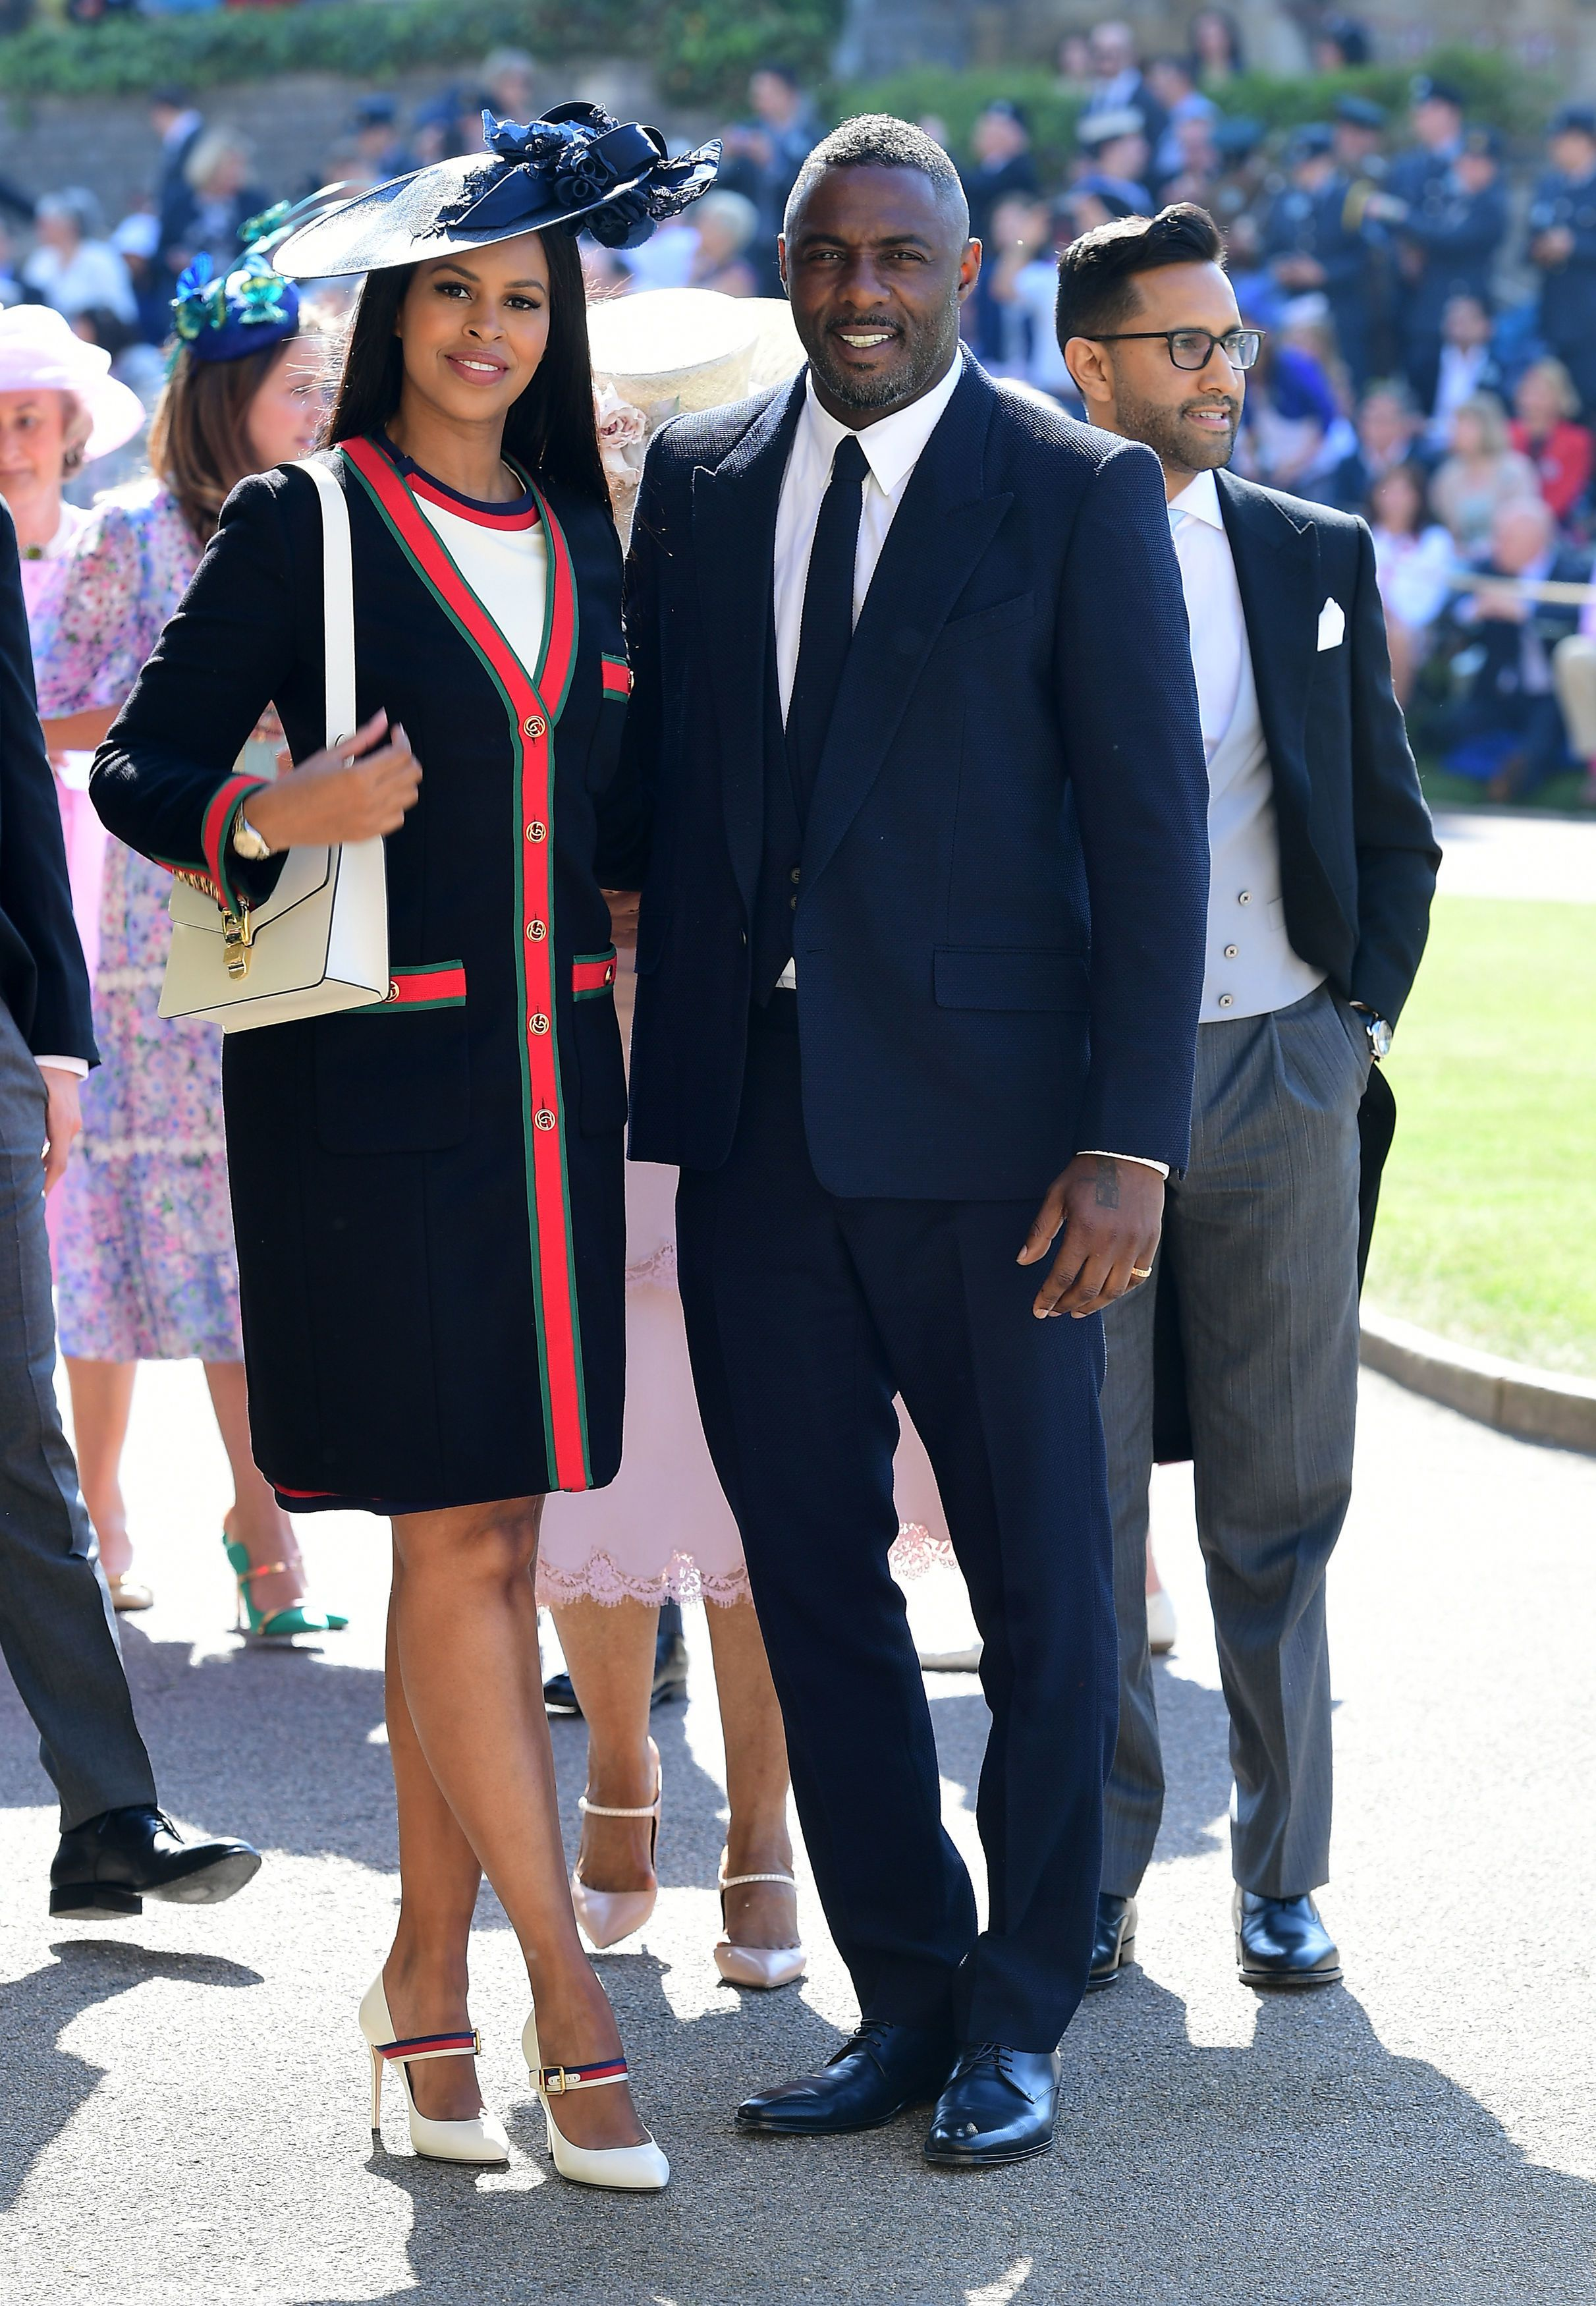 Celebrities At Royal Wedding.Royal Wedding 2018 Best Dressed Celebrity And Royal Fashion At